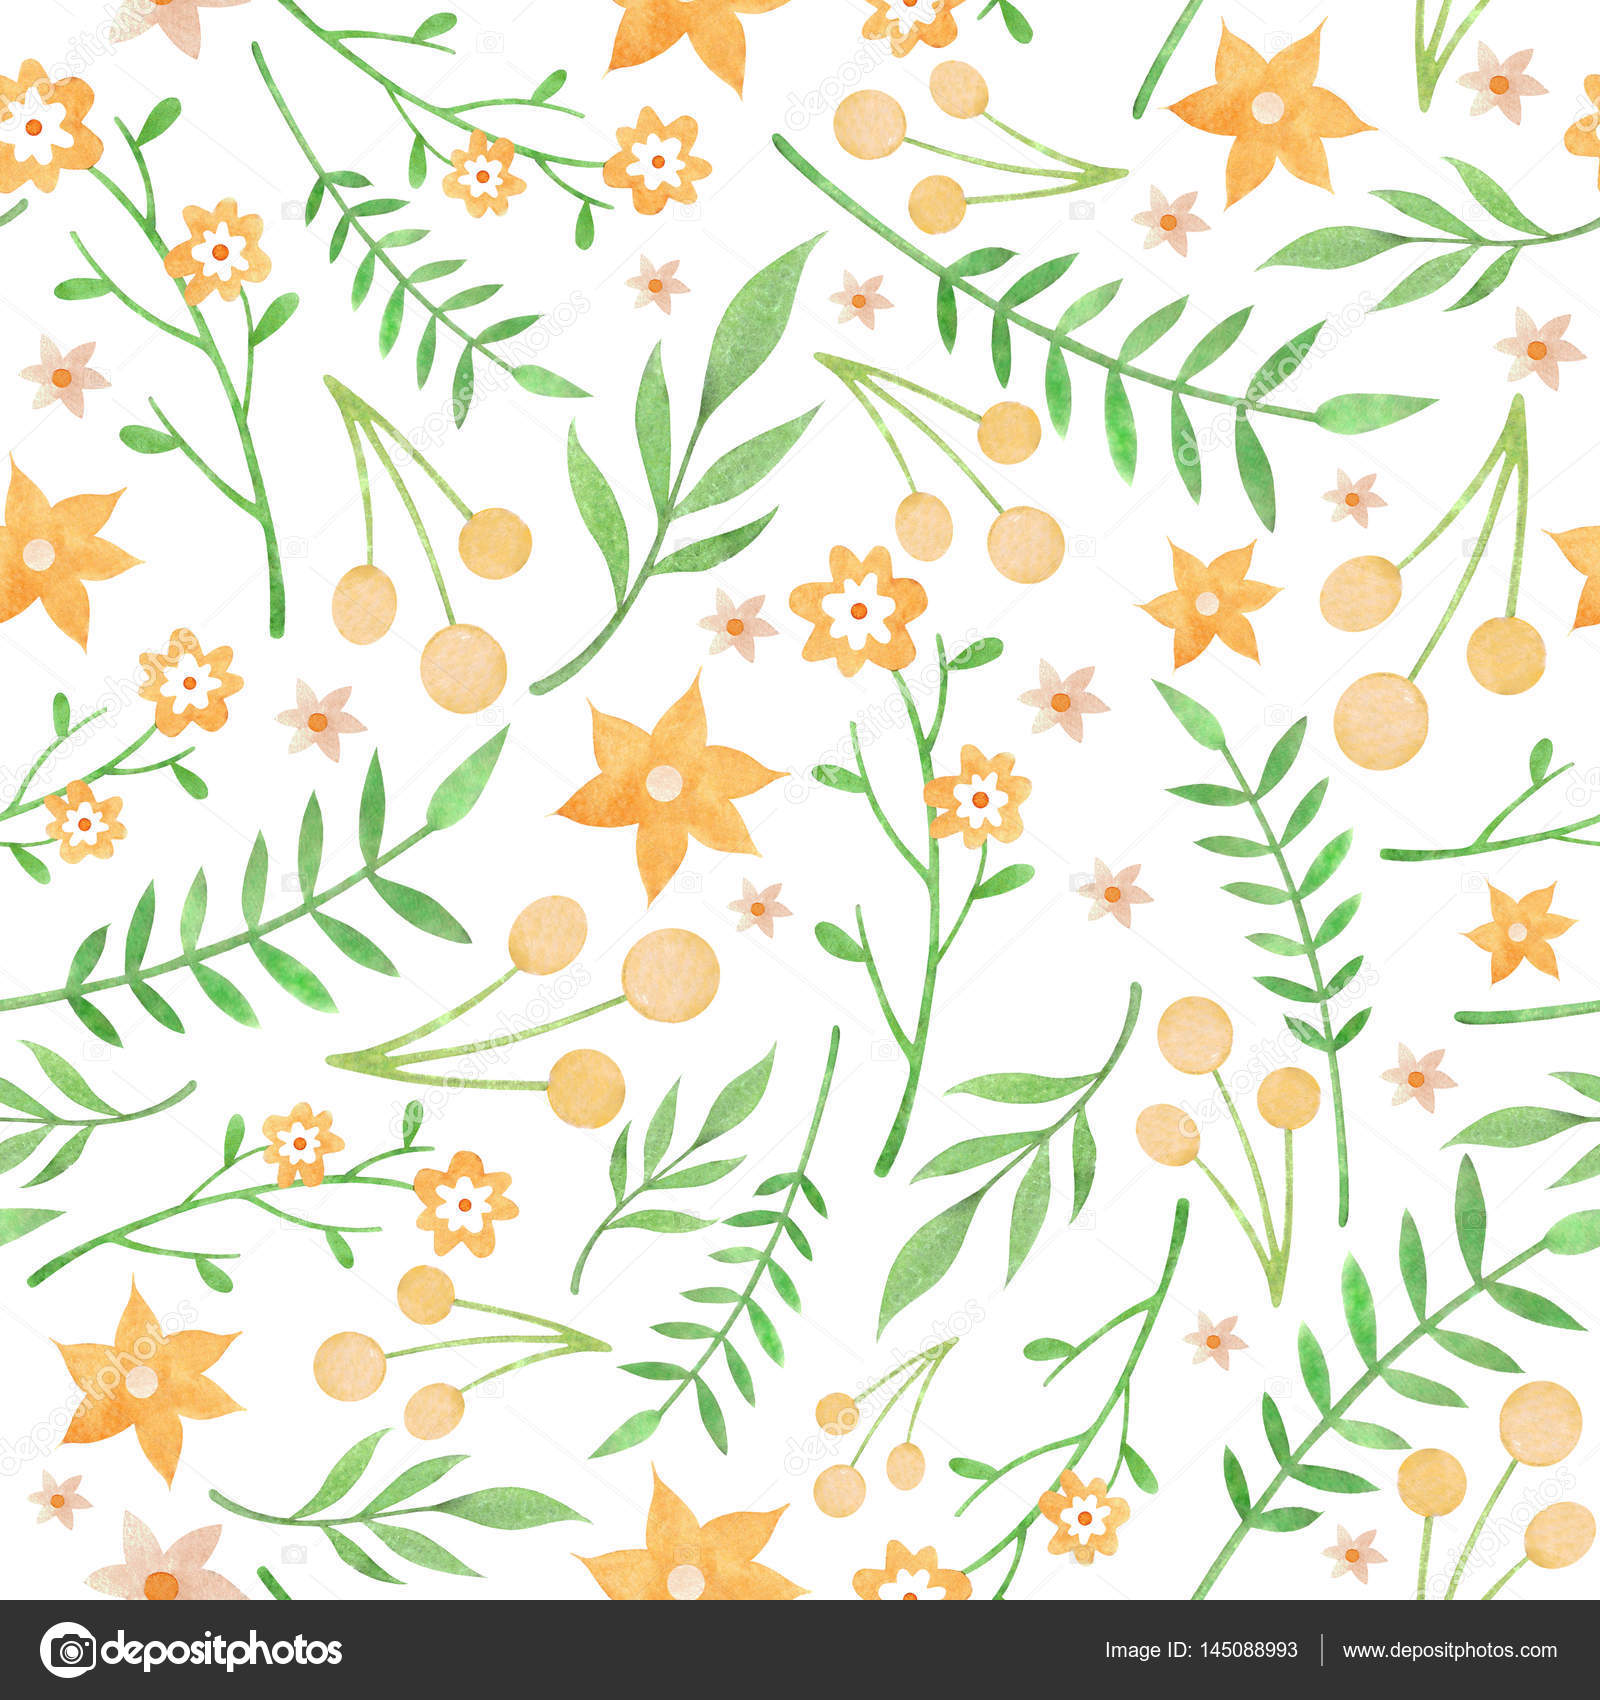 Watercolor Floral Pattern With Yellow Flowers On White Background